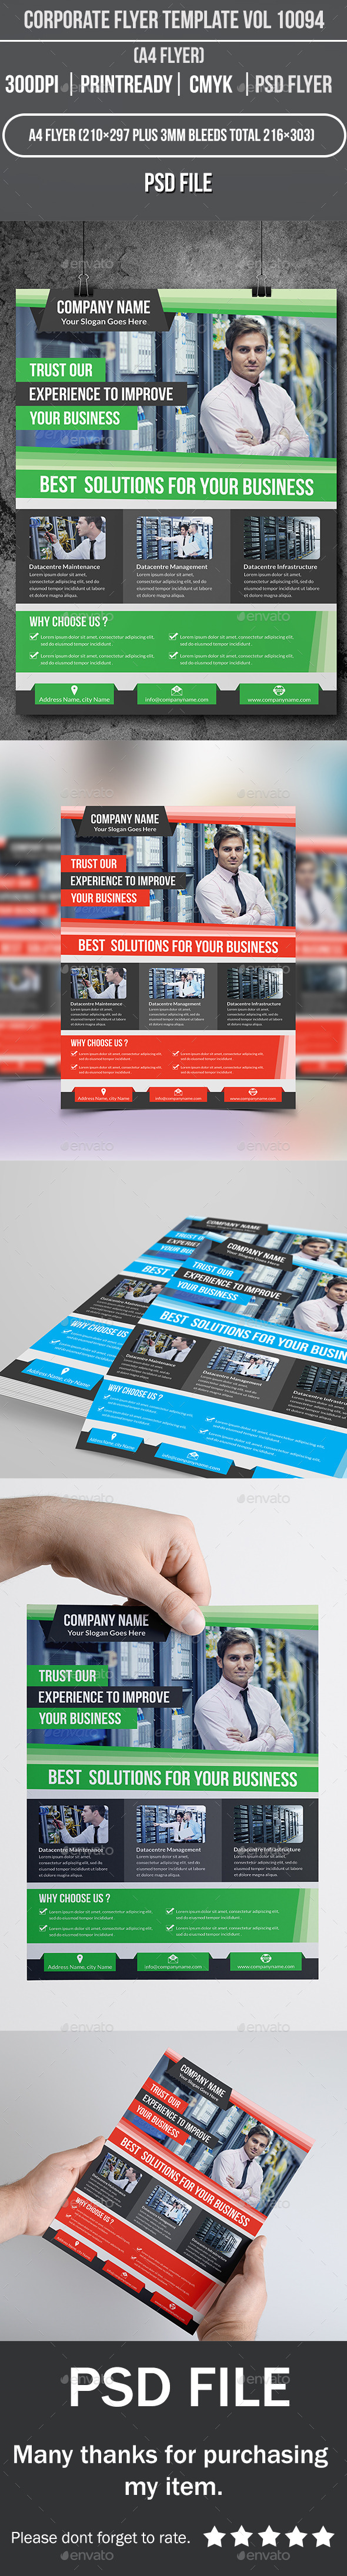 Corporate Flyer Template Vol 10094 - Corporate Flyers